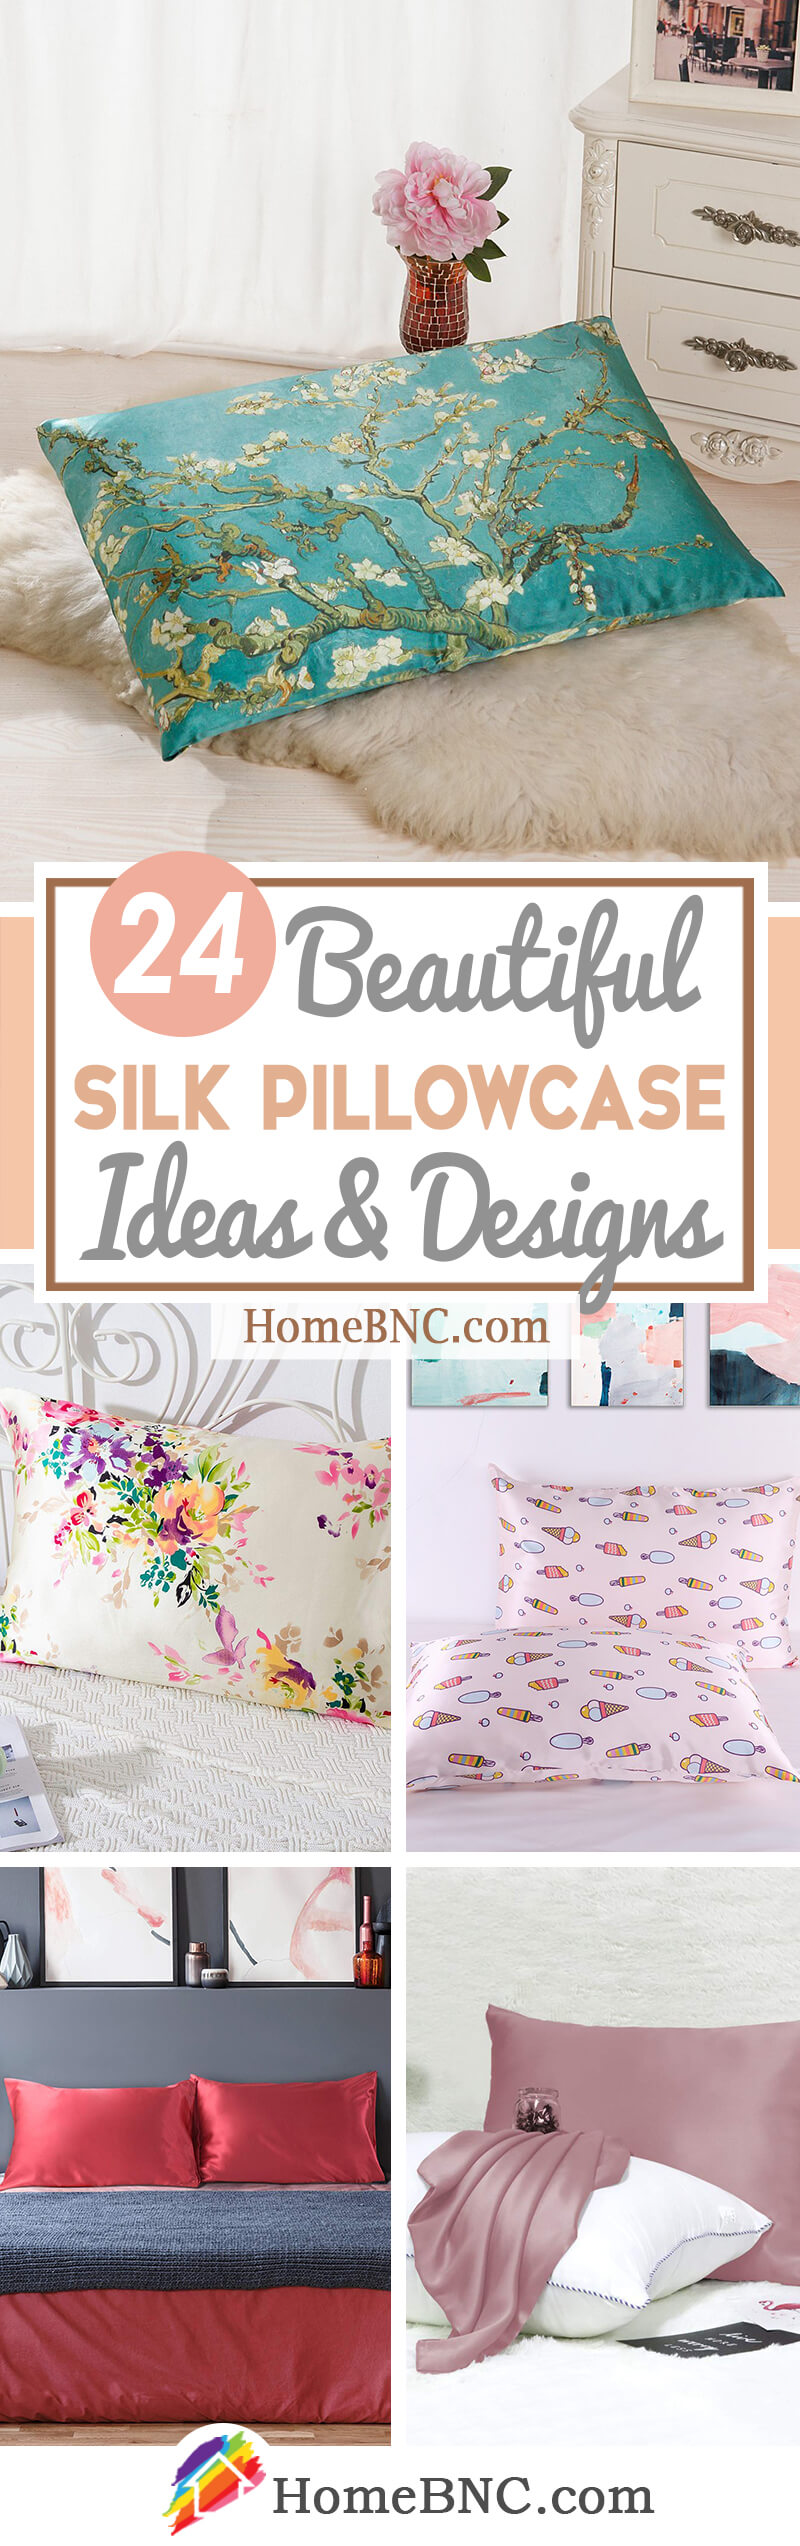 Silk Pillowcase Design Ideas